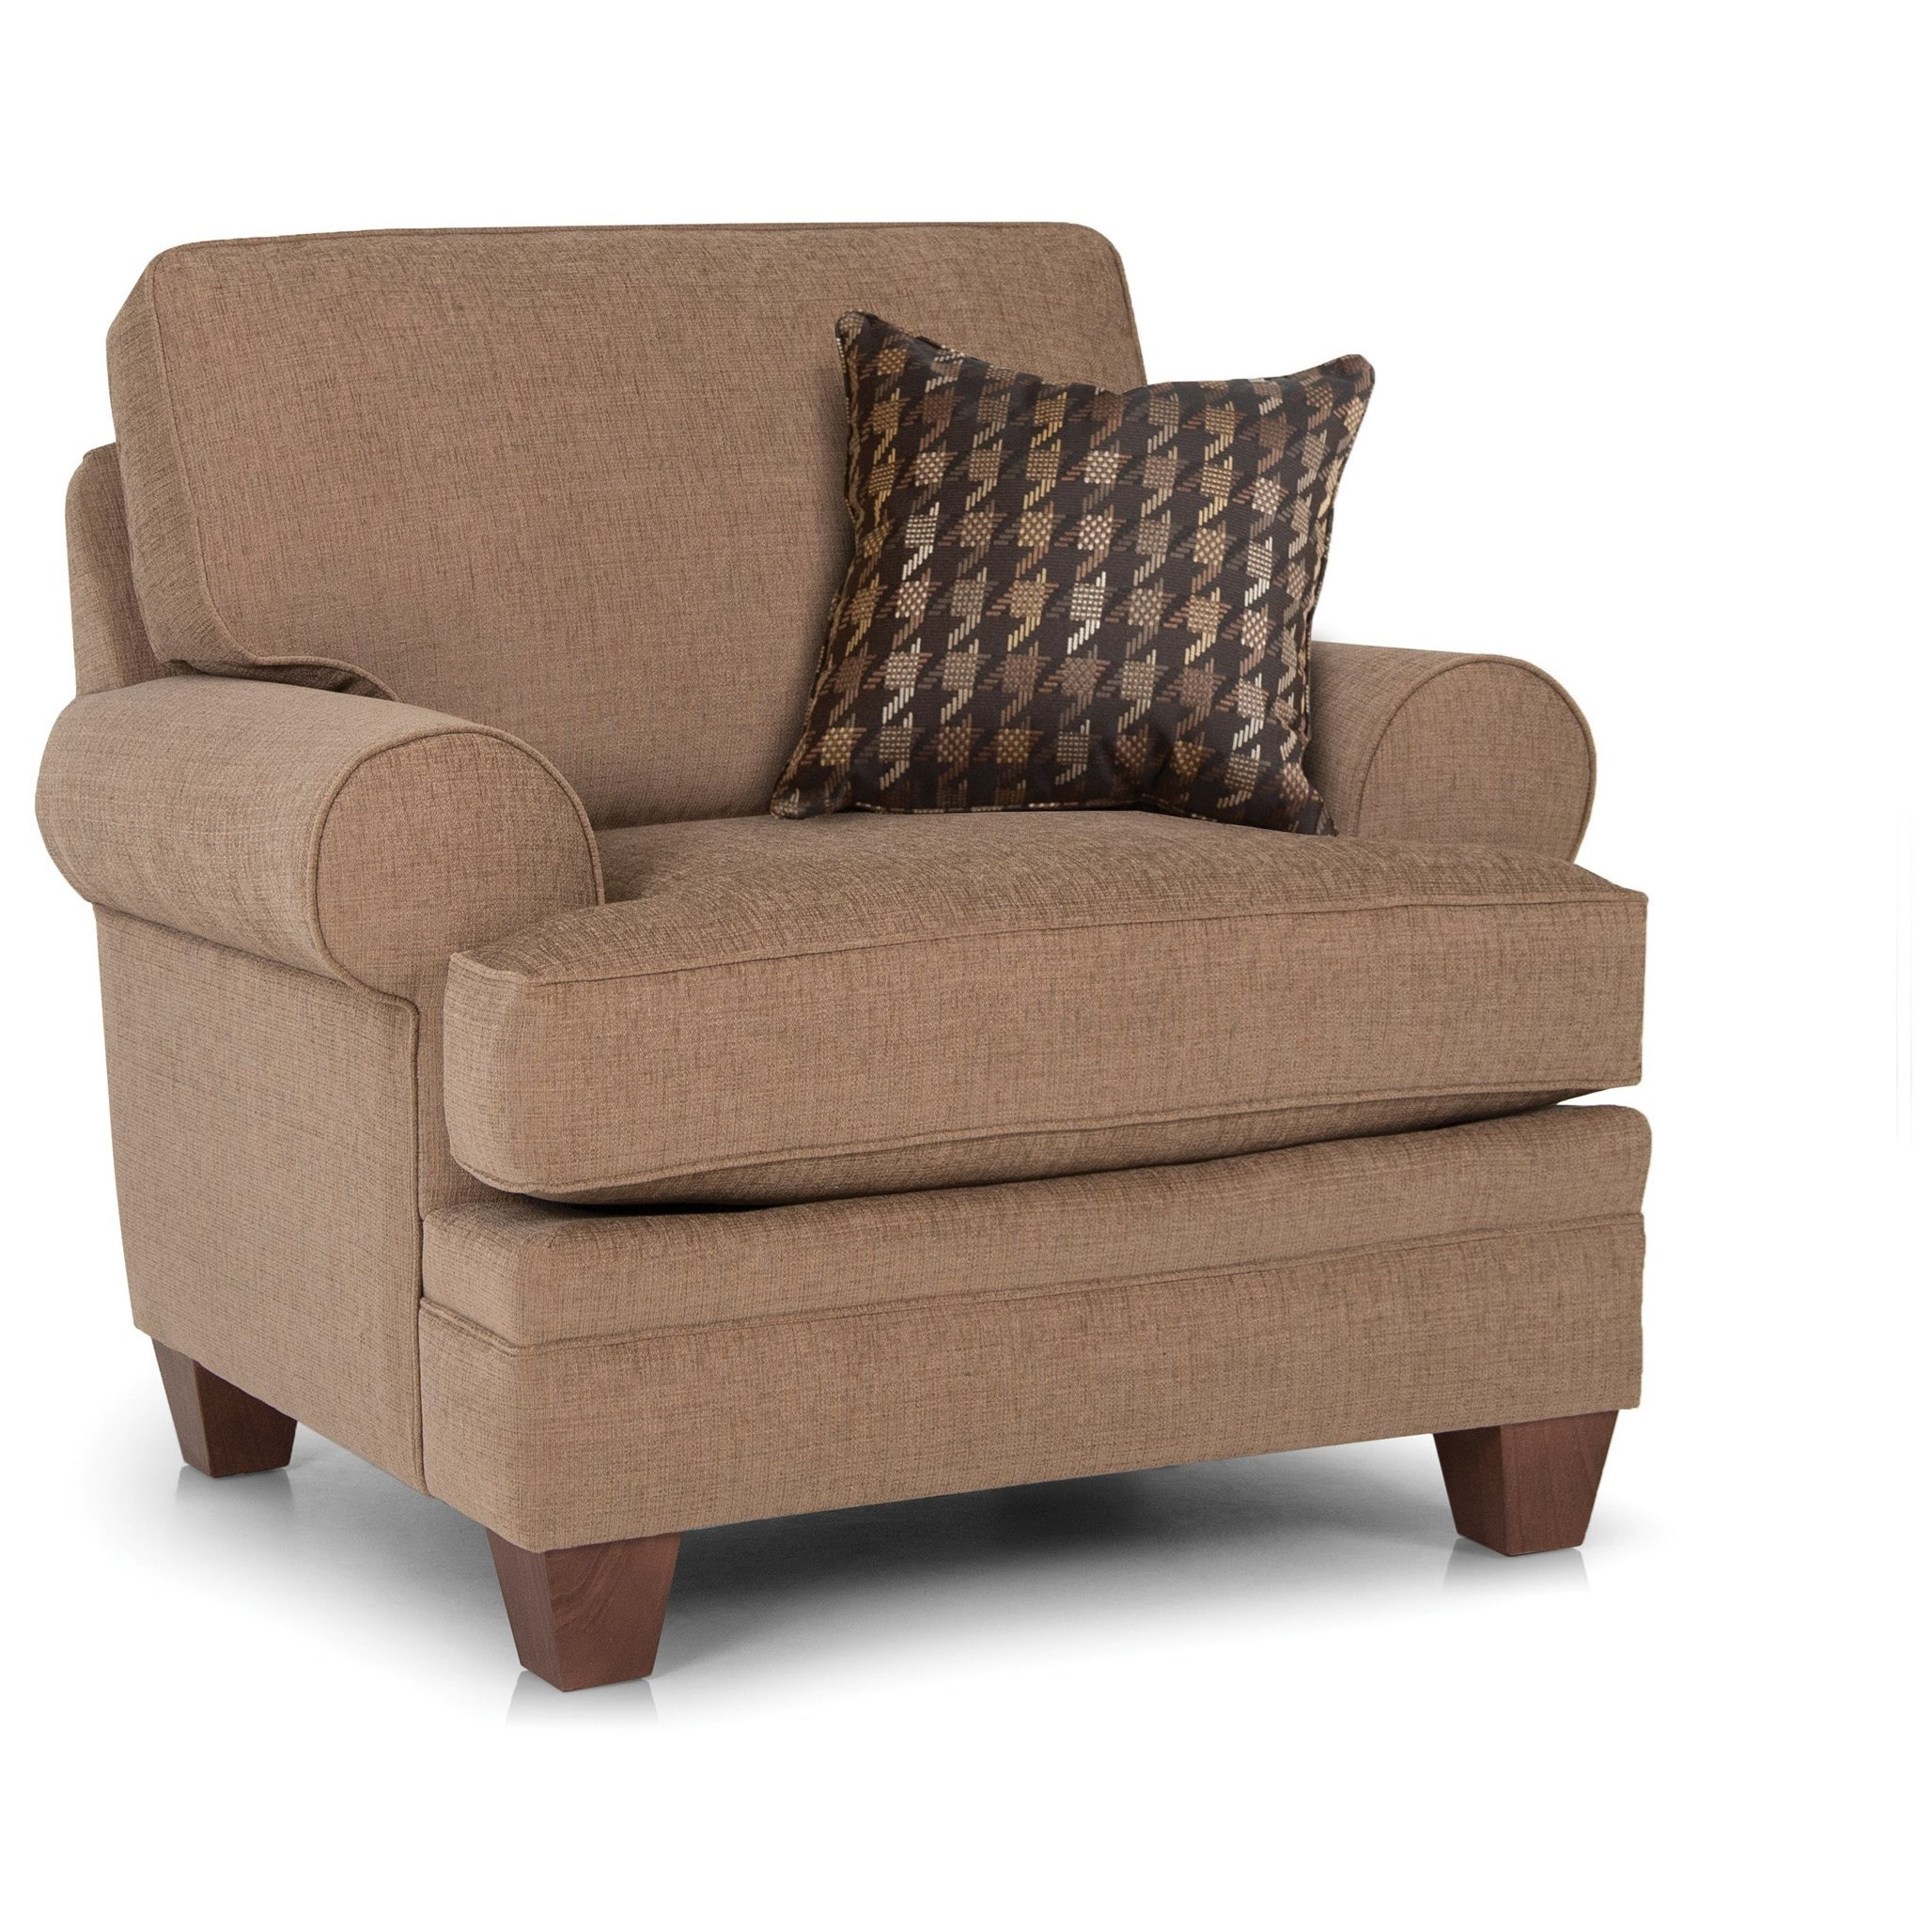 Build Your Own 5000 Series Customizable Chair by Smith Brothers at Saugerties Furniture Mart